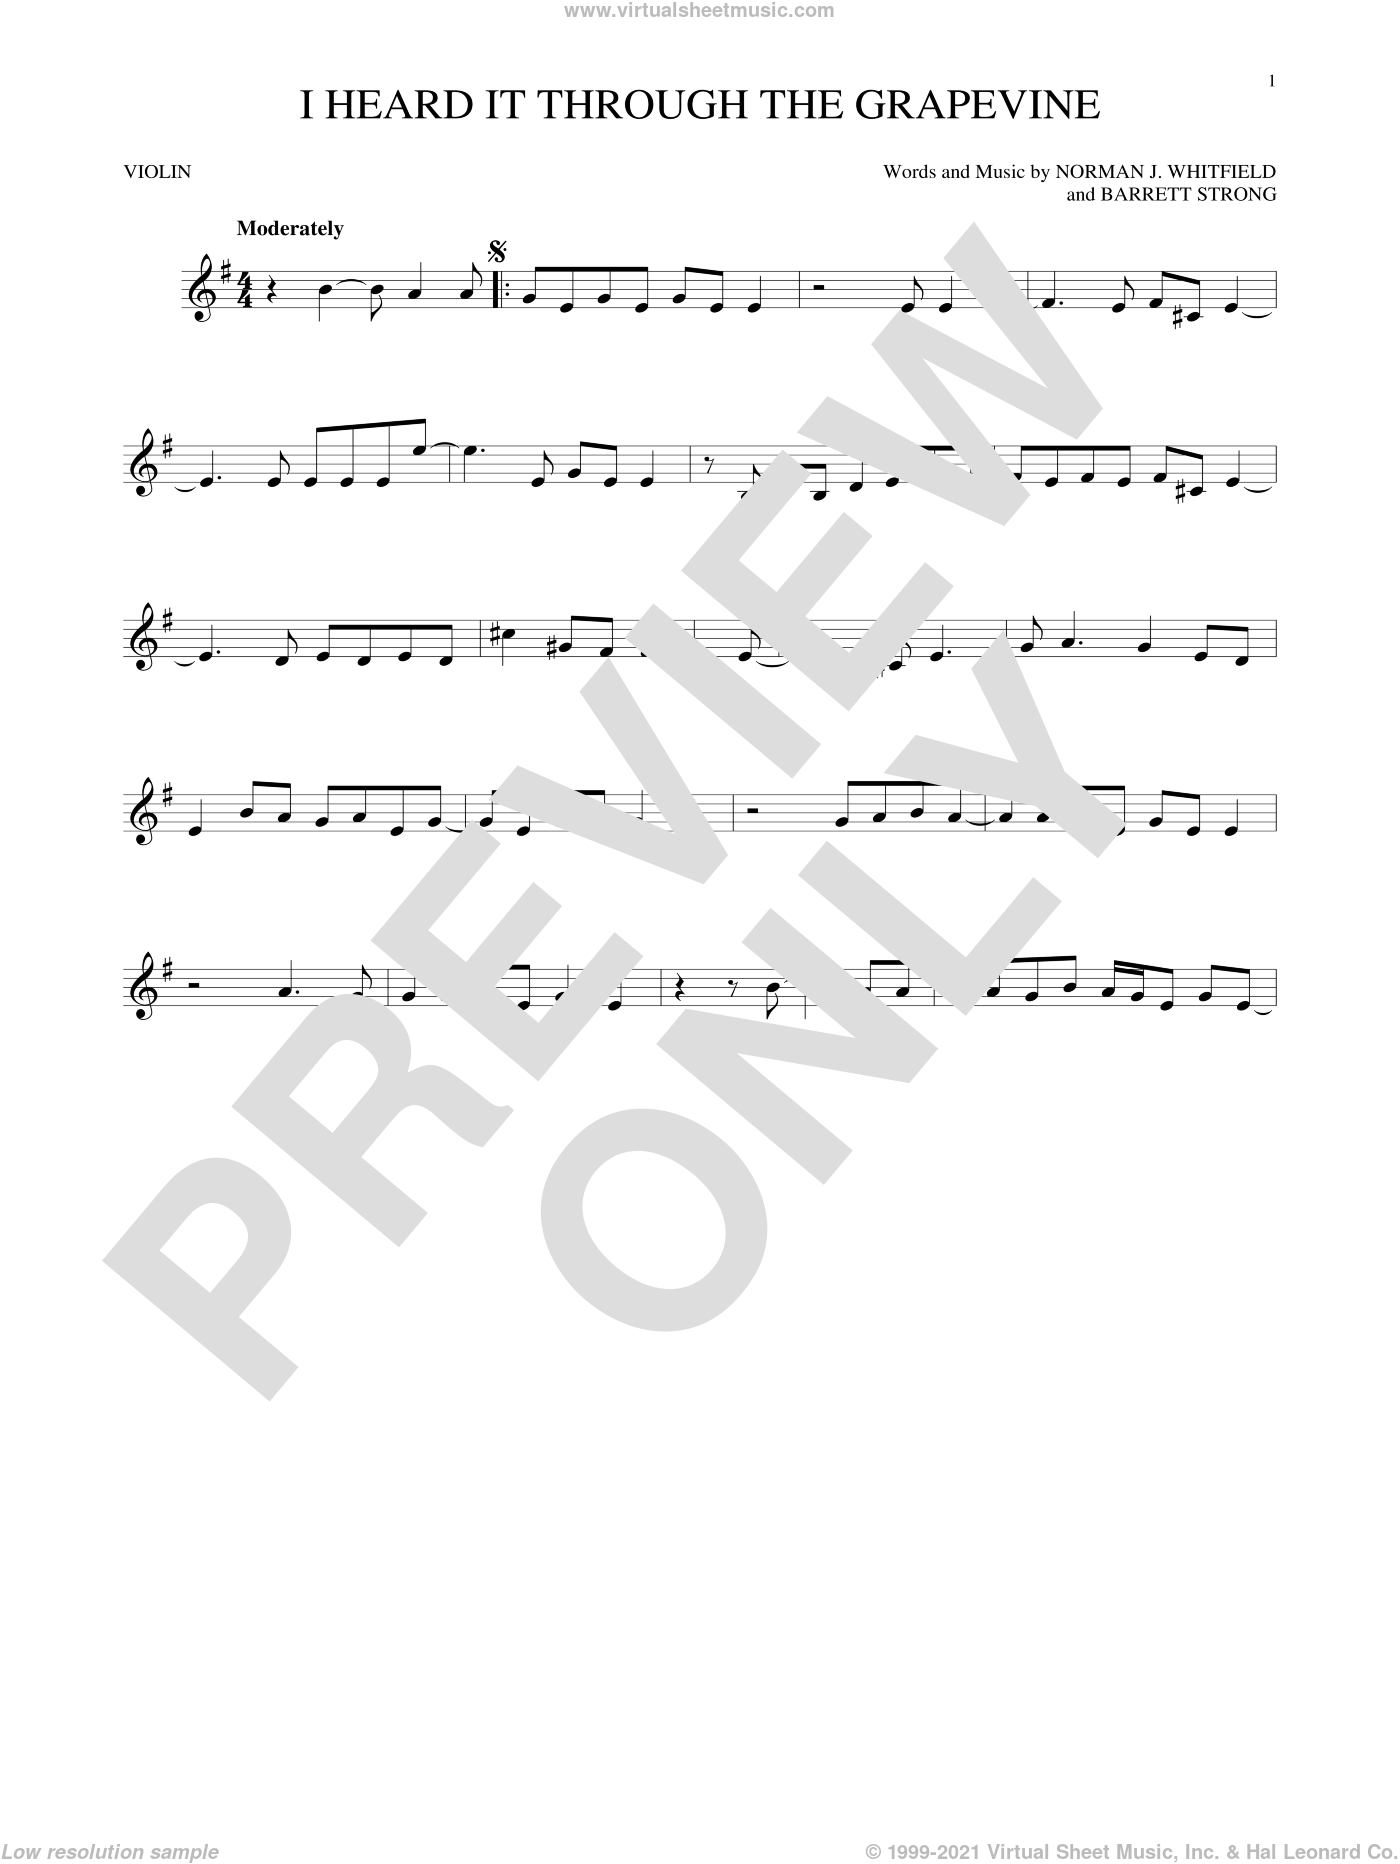 I Heard It Through The Grapevine sheet music for violin solo by Norman Whitfield and Barrett Strong. Score Image Preview.